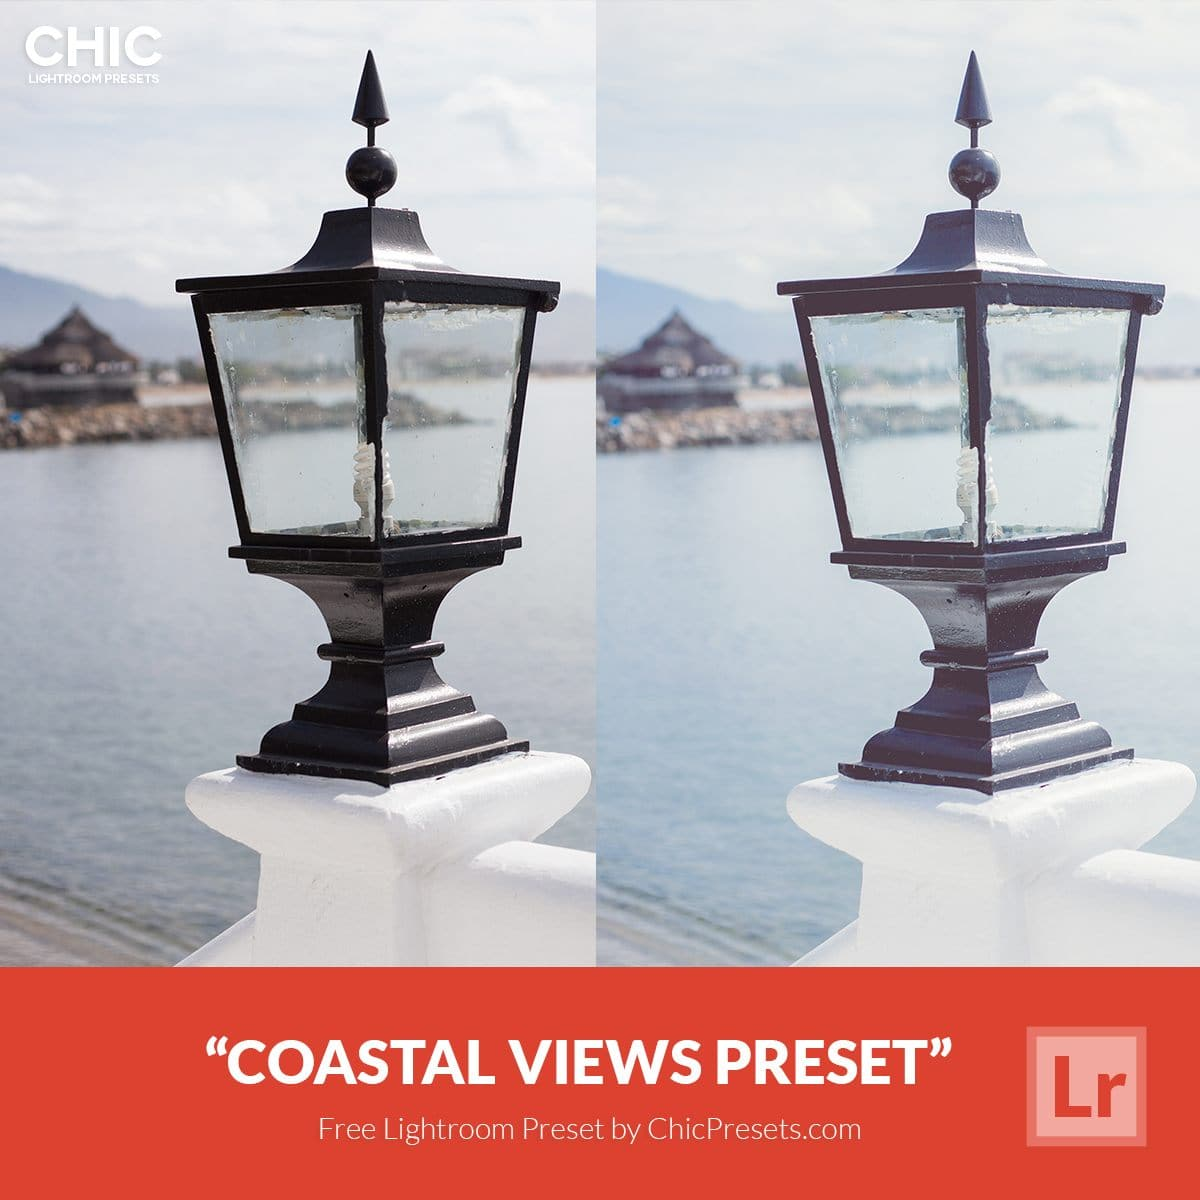 Free-Lightroom-Preset-Coastal-Views